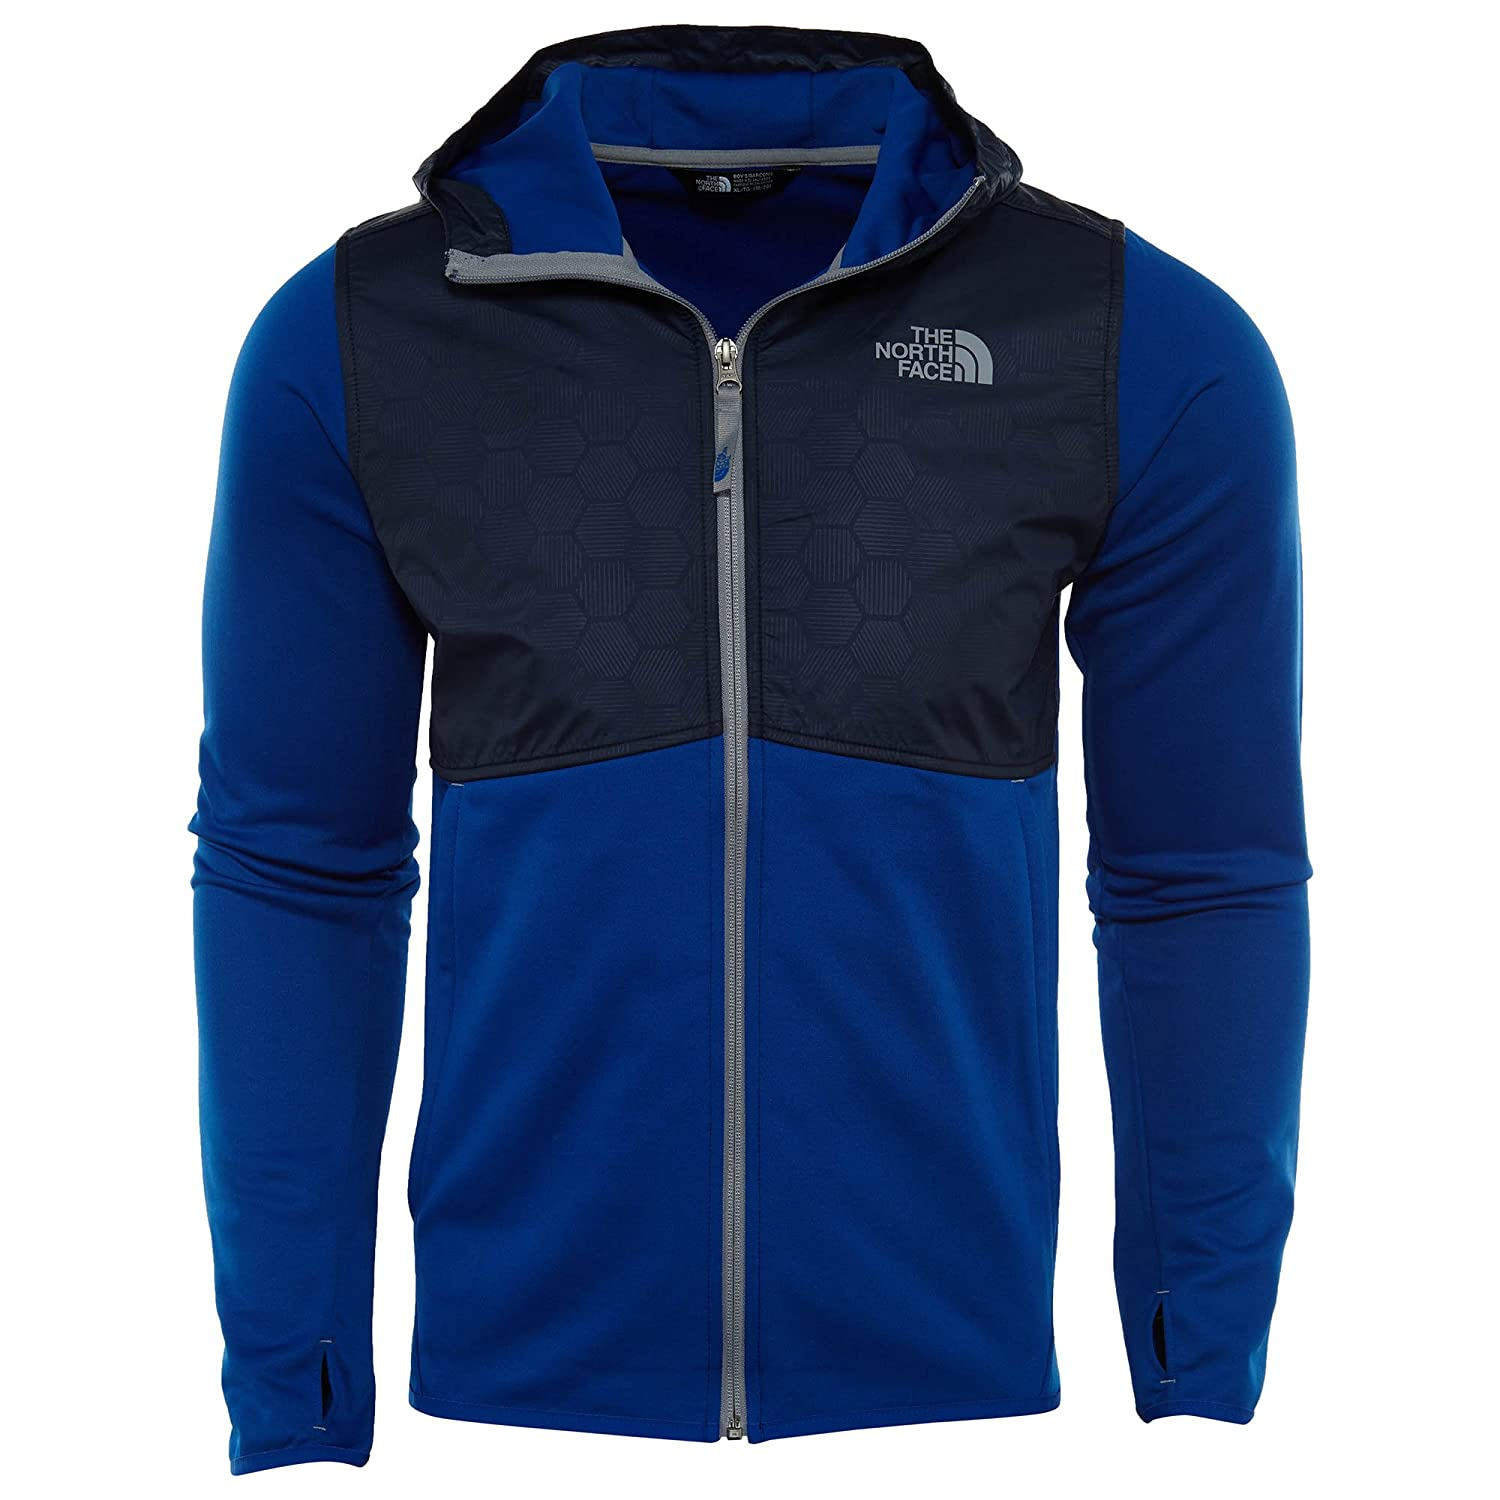 The North Face Big Boys' Kickin It Hoodie